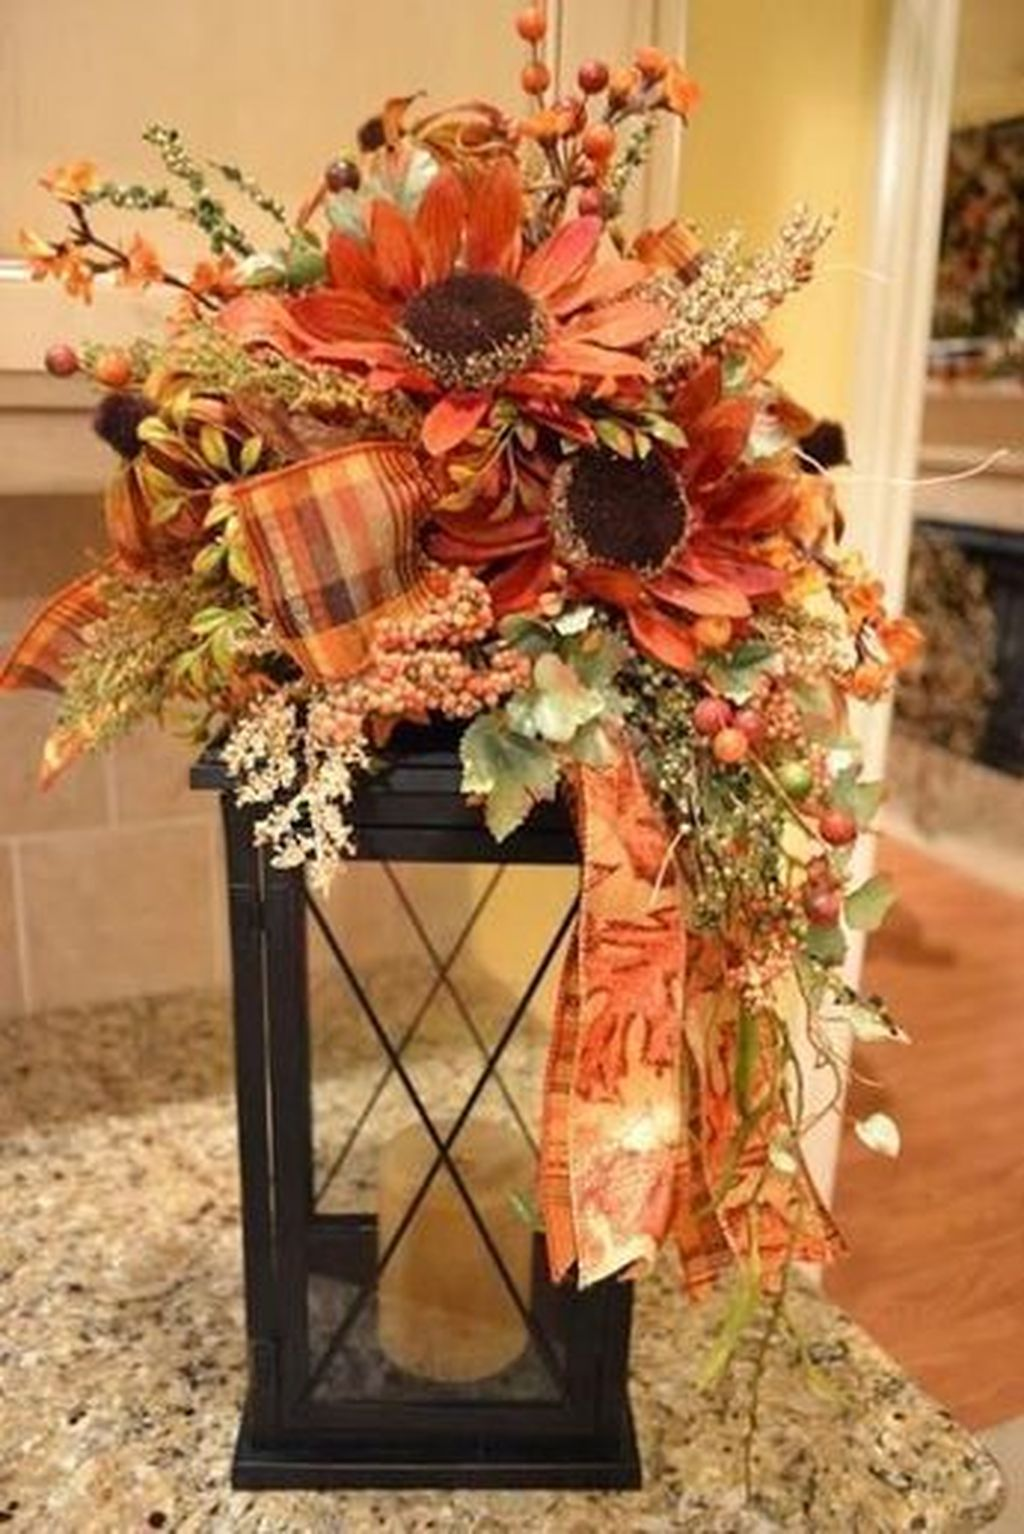 Stunning DIY Fall Home Decor Ideas 04